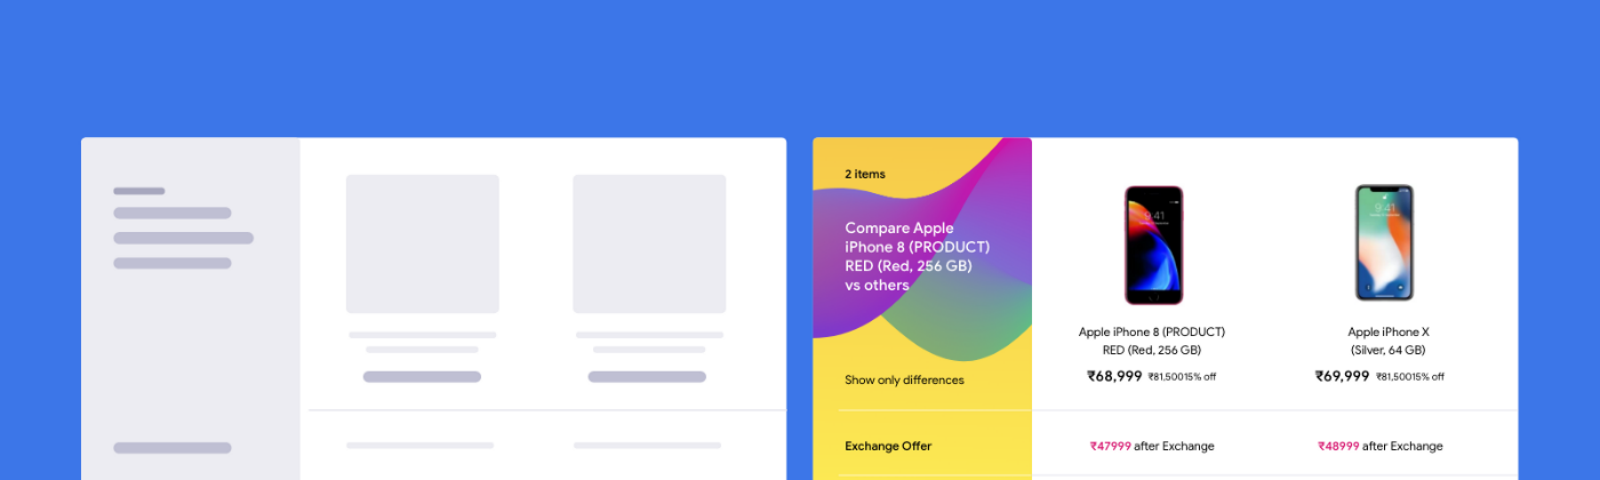 Product Comparision UI patterns